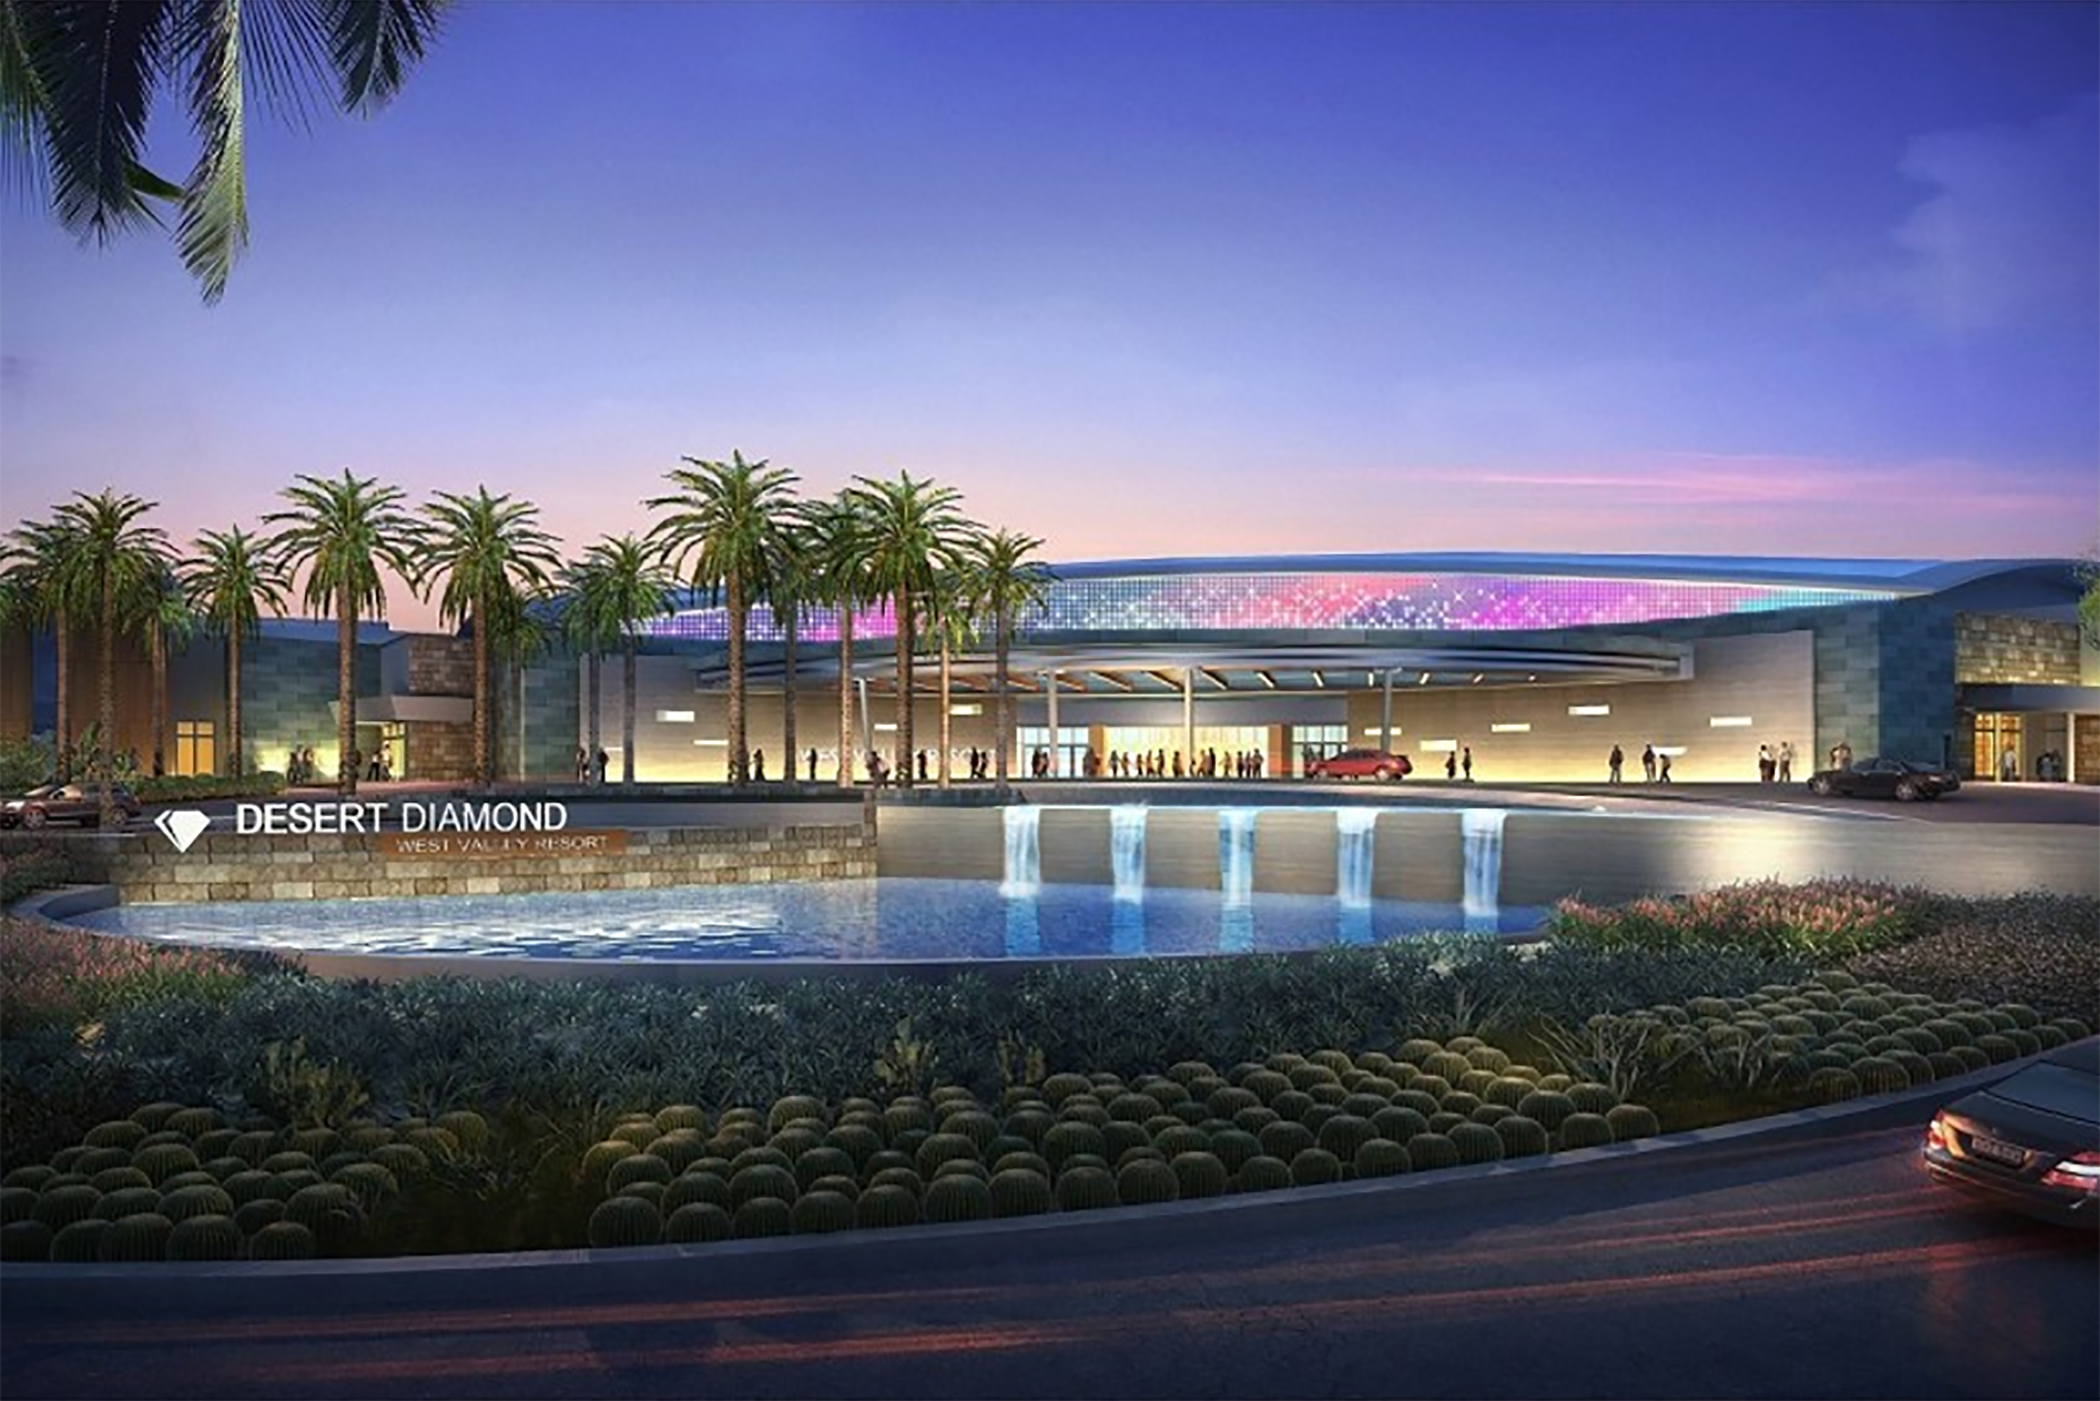 The new Desert Diamond Casino in one of the West Valley's largest employers. (Courtesy of Tohono O'odham Gaming Enterprise)